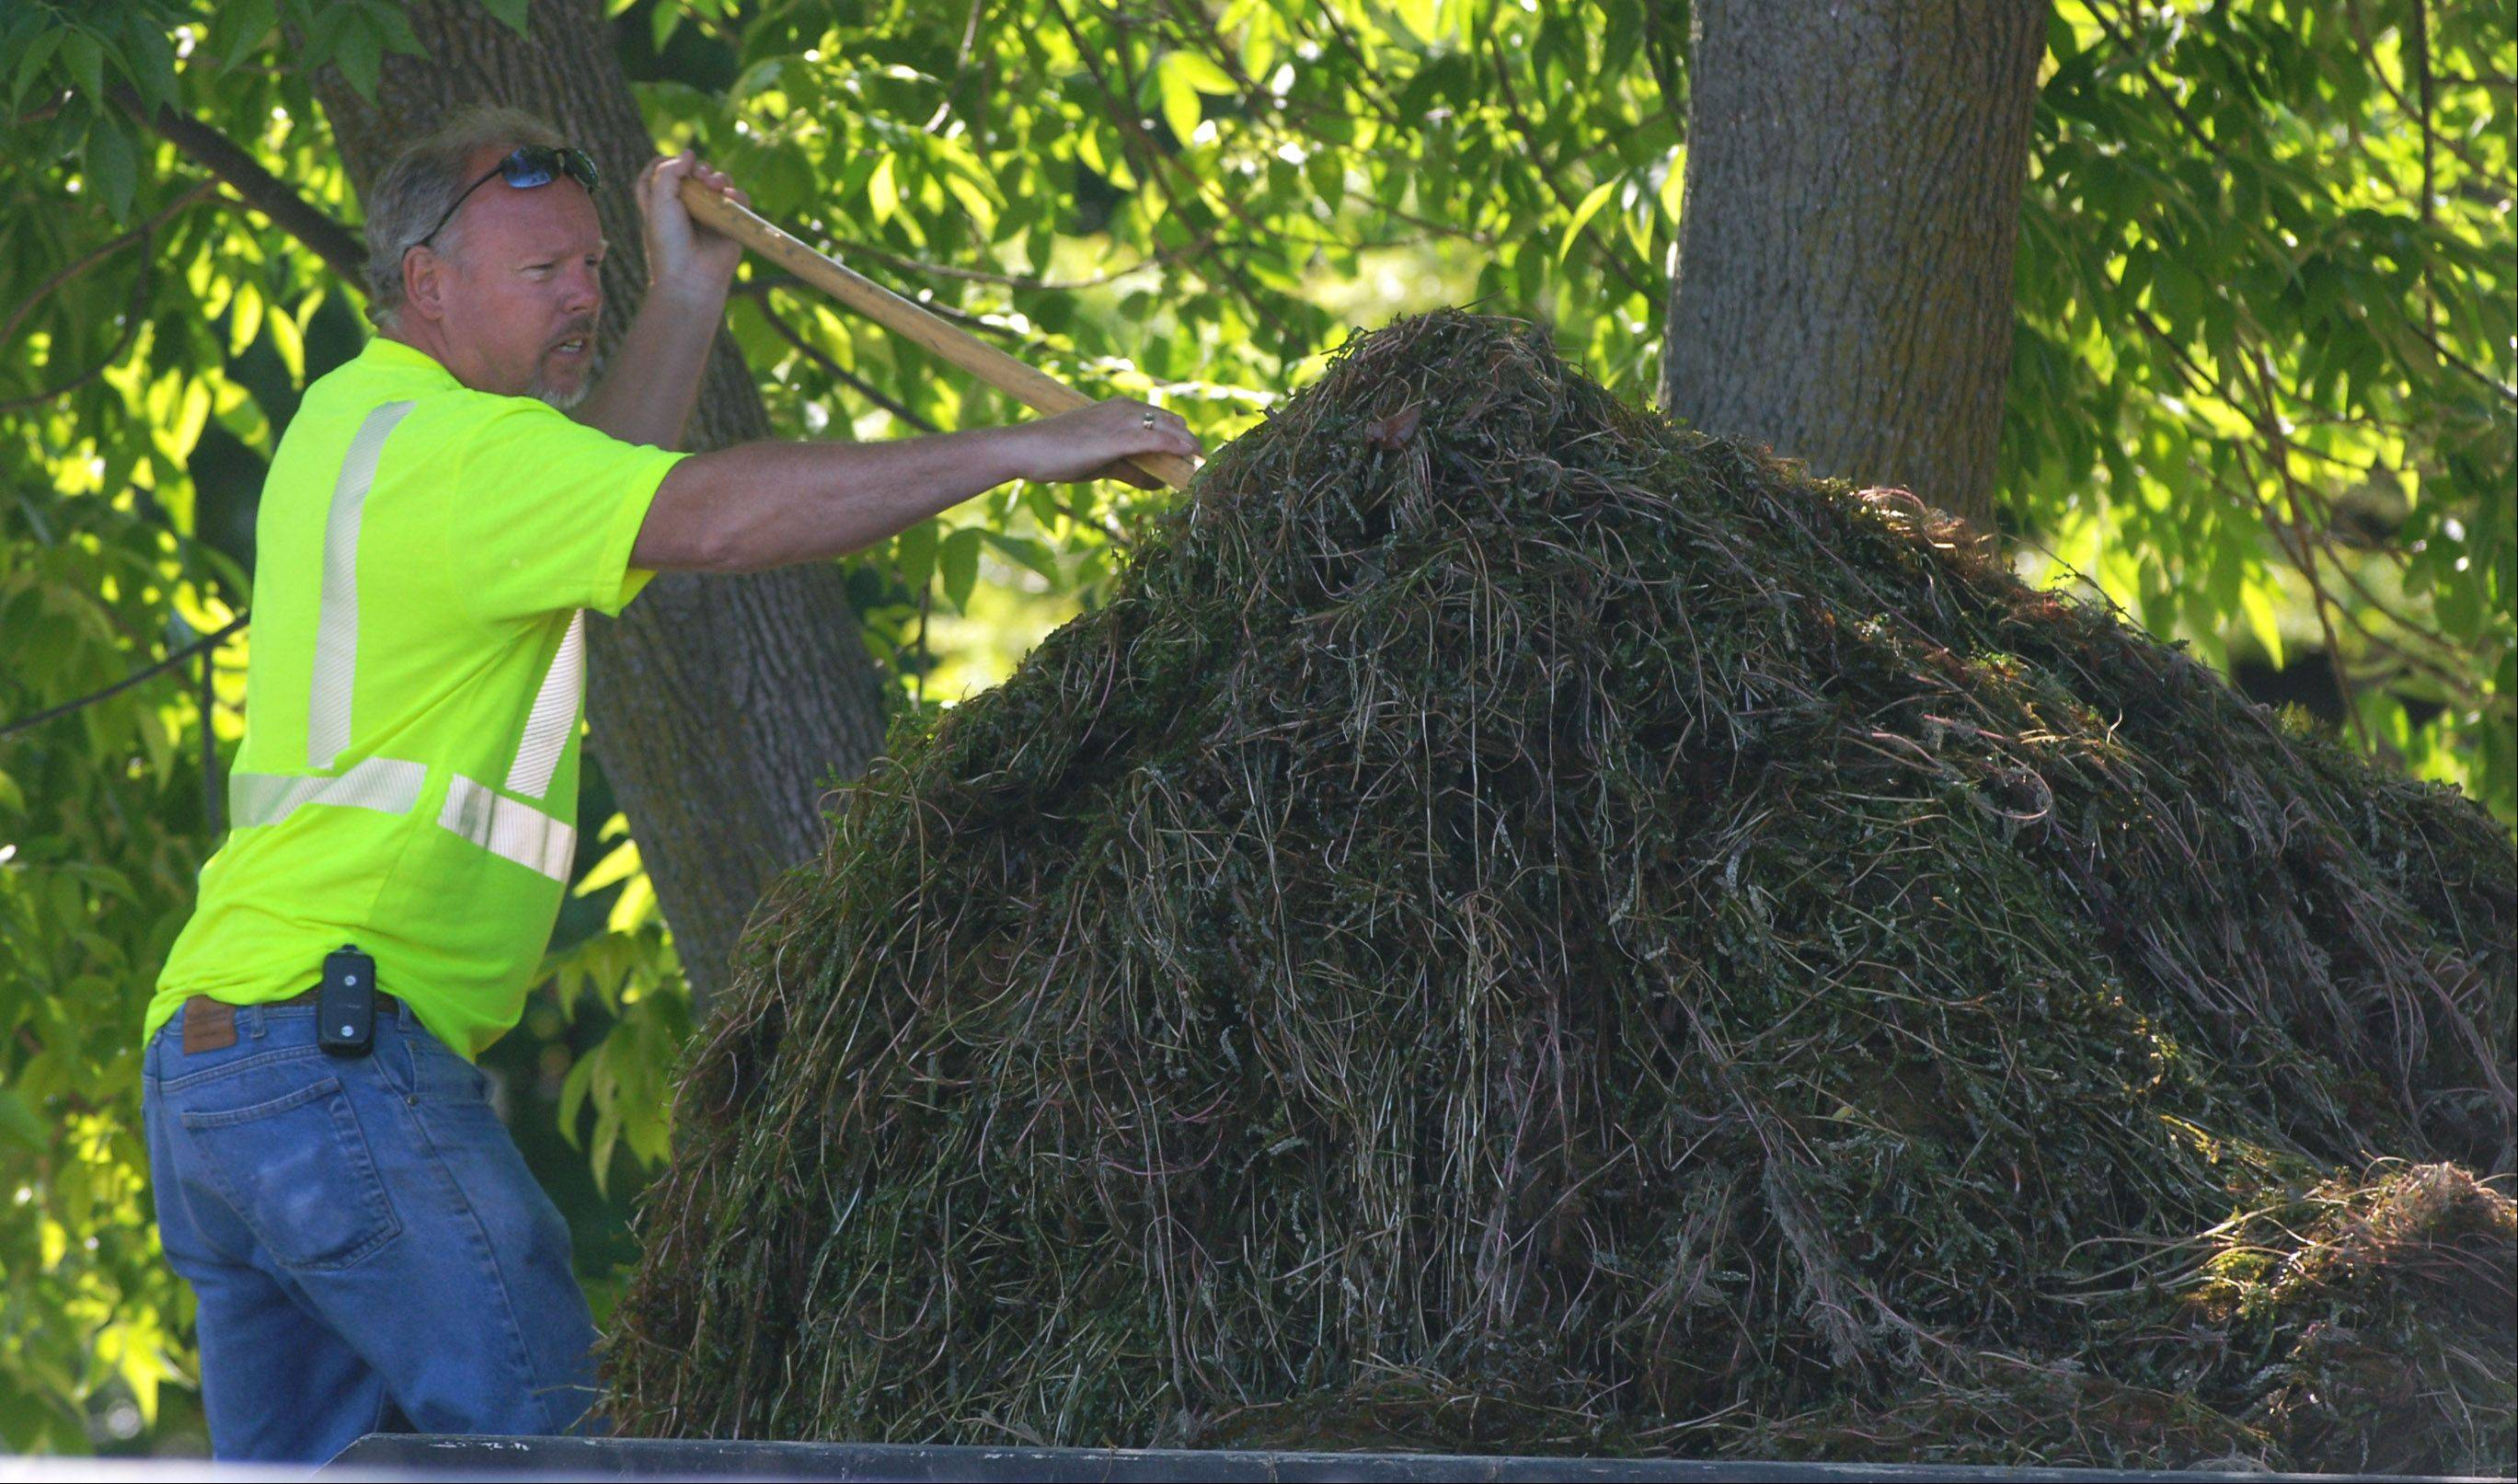 A pile of milfoil and curly leaf pond weed is prepared for transport from Bangs Lake following a harvest by Bob Garrod of the Wauconda Public Works department.